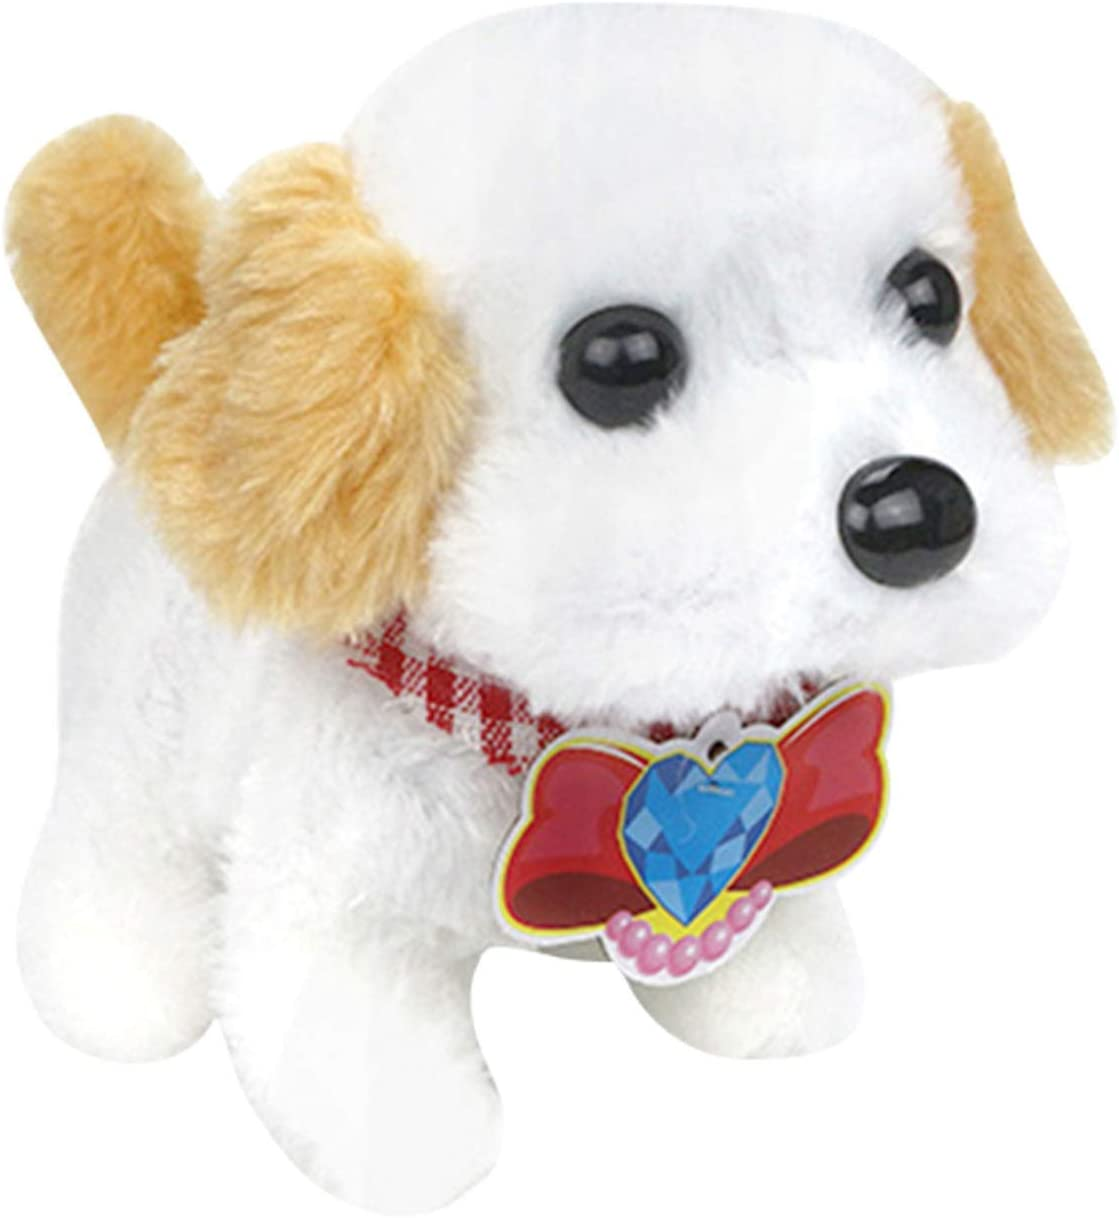 YOKOKO Plush Golden Retriever Electronic Interactive Toy Walking,Barking,Wagging Tail,Stretching Puppy Dog 7 Inches Gifts for Kids (Yellow)